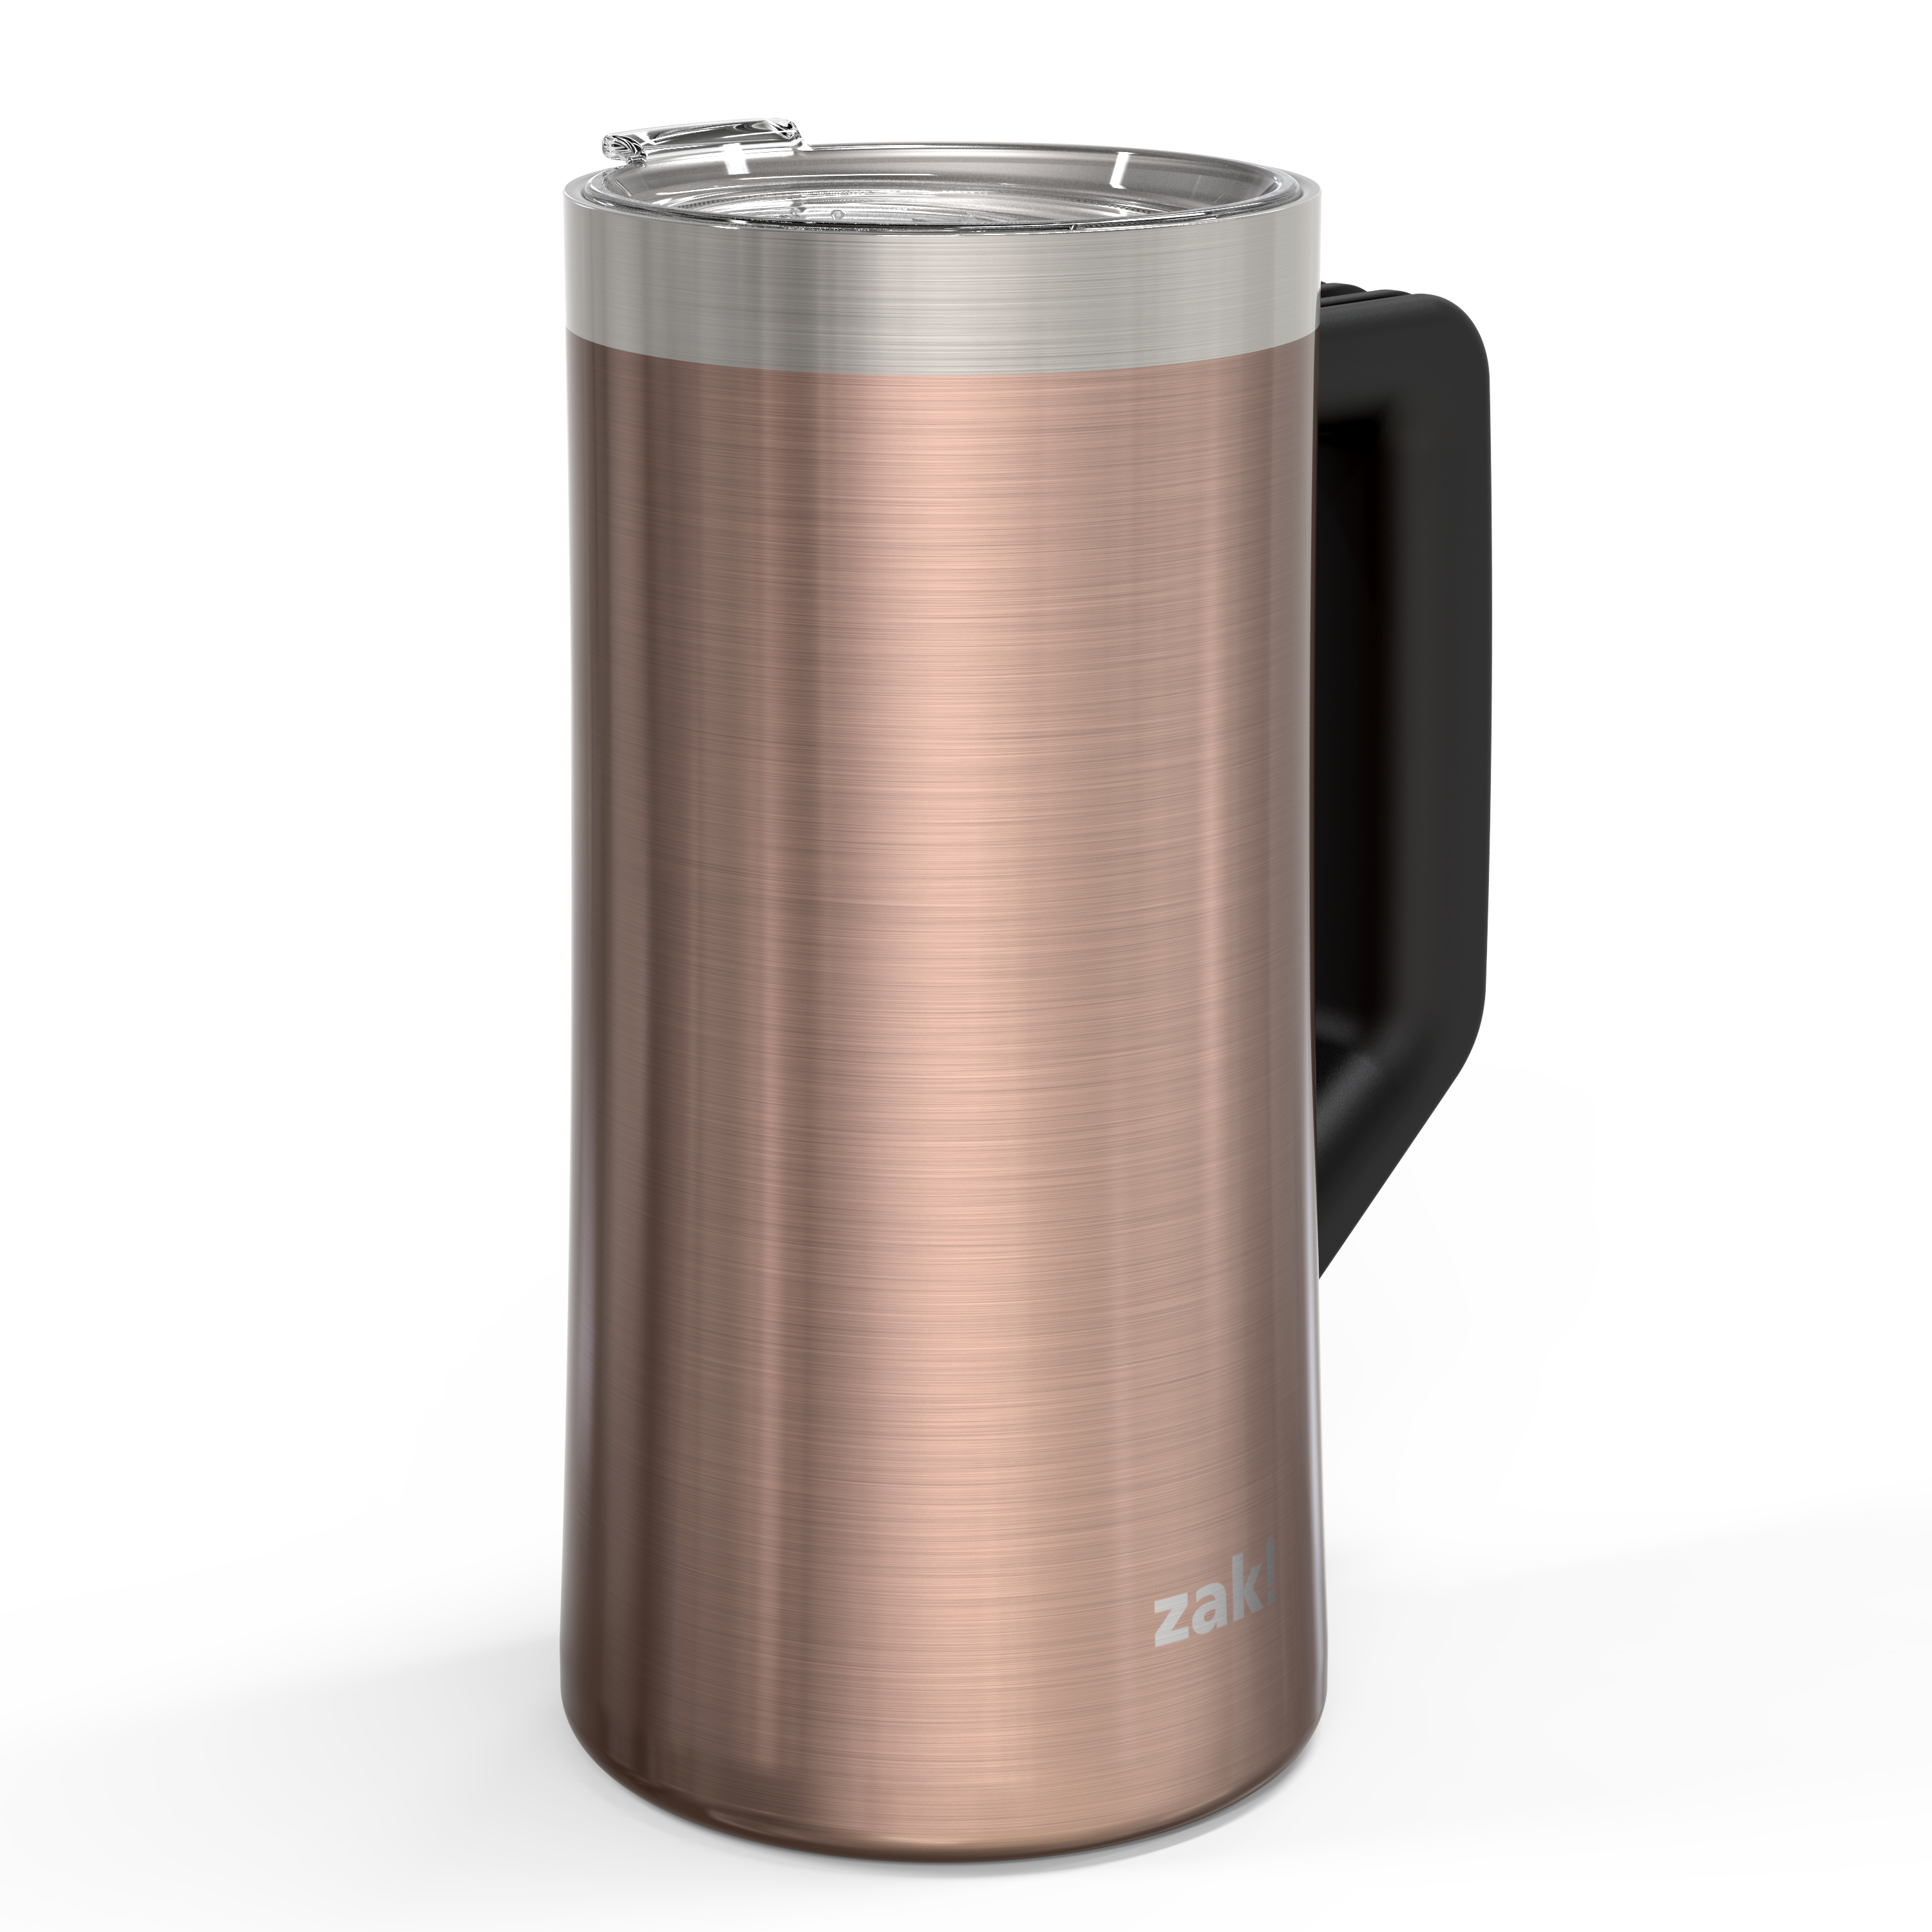 Creston 25 ounce Vacuum Insulated Stainless Steel Tumbler, Rose Gold slideshow image 2